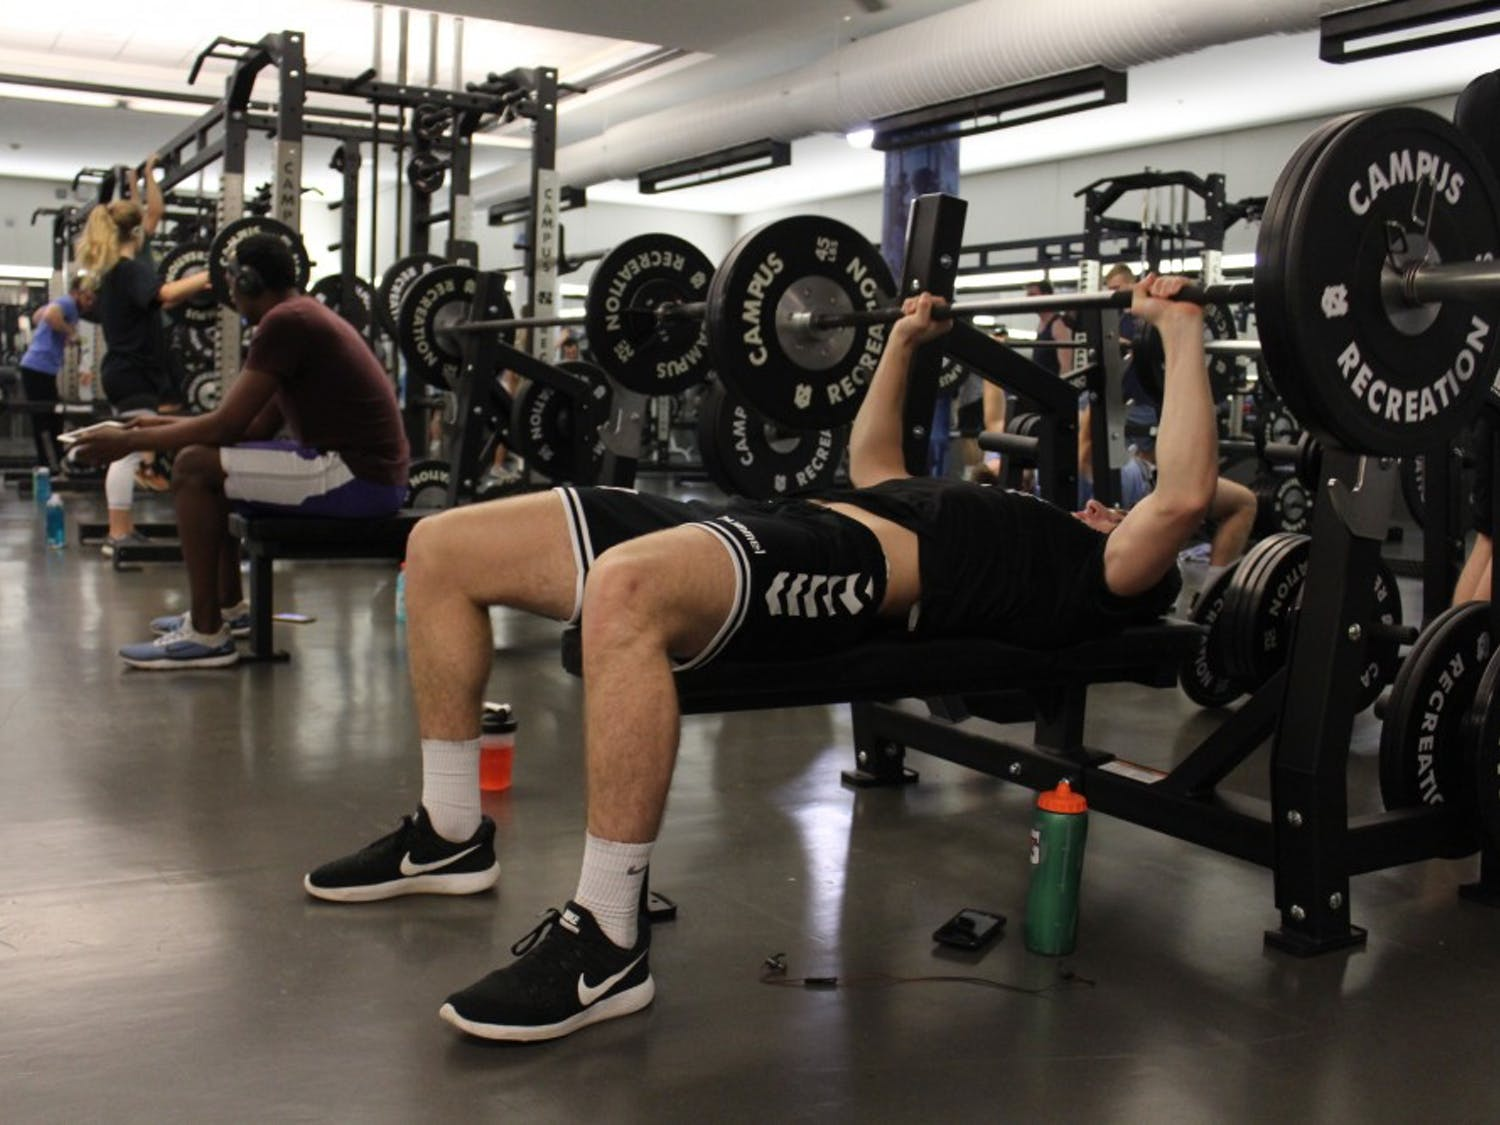 Sophomore chemistry major Aaron Hamm utilizes one of the new bench presses that are a part of the new additions during the ongoing renovations at the Student Recreation Center on Oct. 24, 2018.